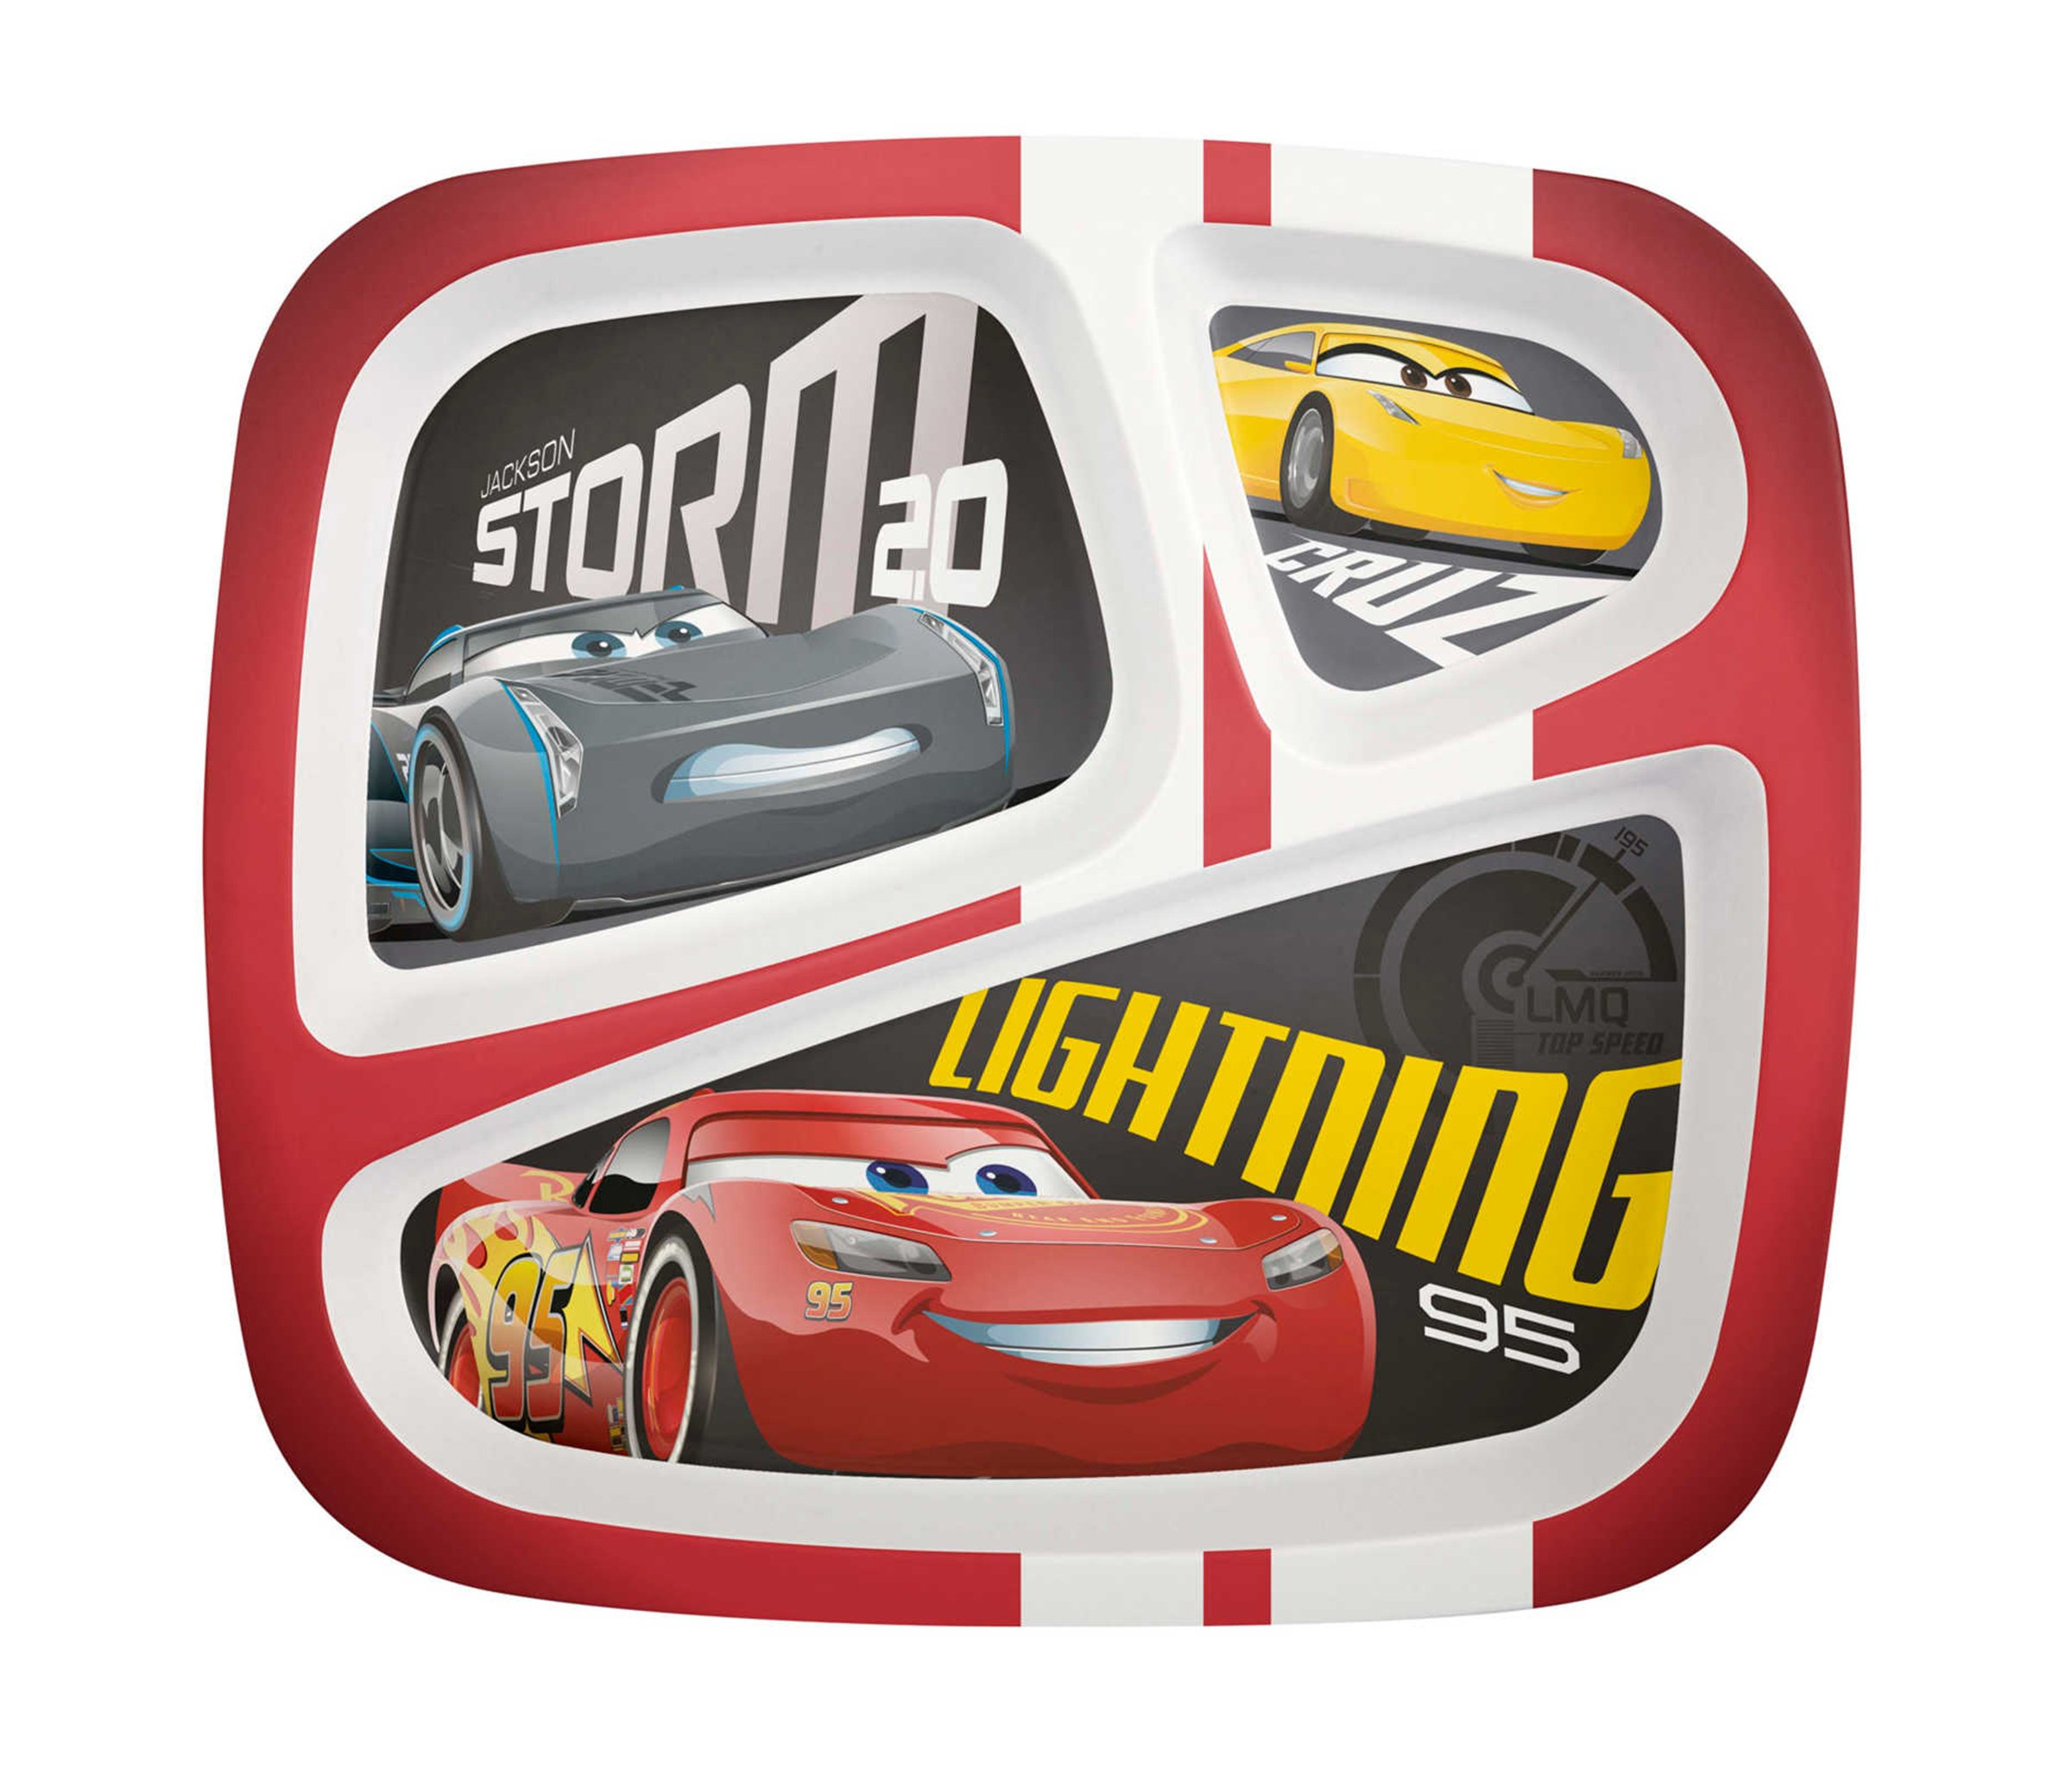 Mozlly Multipack - Zak Designs Disney Cars 3 Red 3 Section Plate for Kids - BPA Free, Stain Resistant - Novelty Character Dinnerware (Pack of 12) - Item #S139011_X12